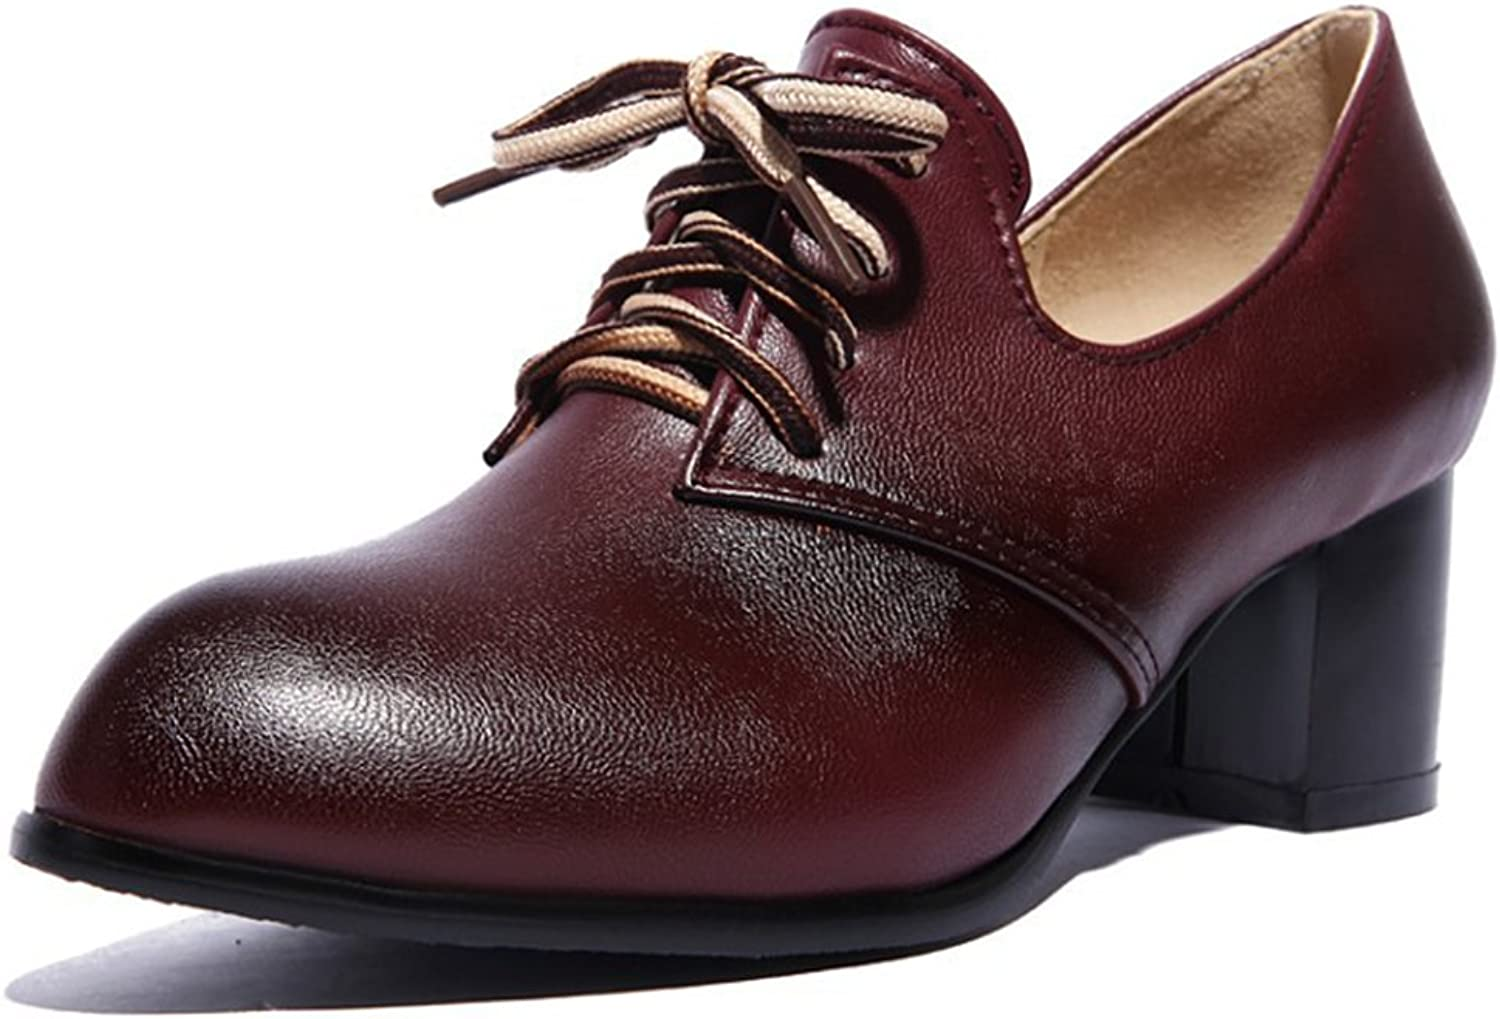 IDIFU Women's Classic Lace Up Mid Chunky Heels Pointed Toe Low Top Office Pumps shoes